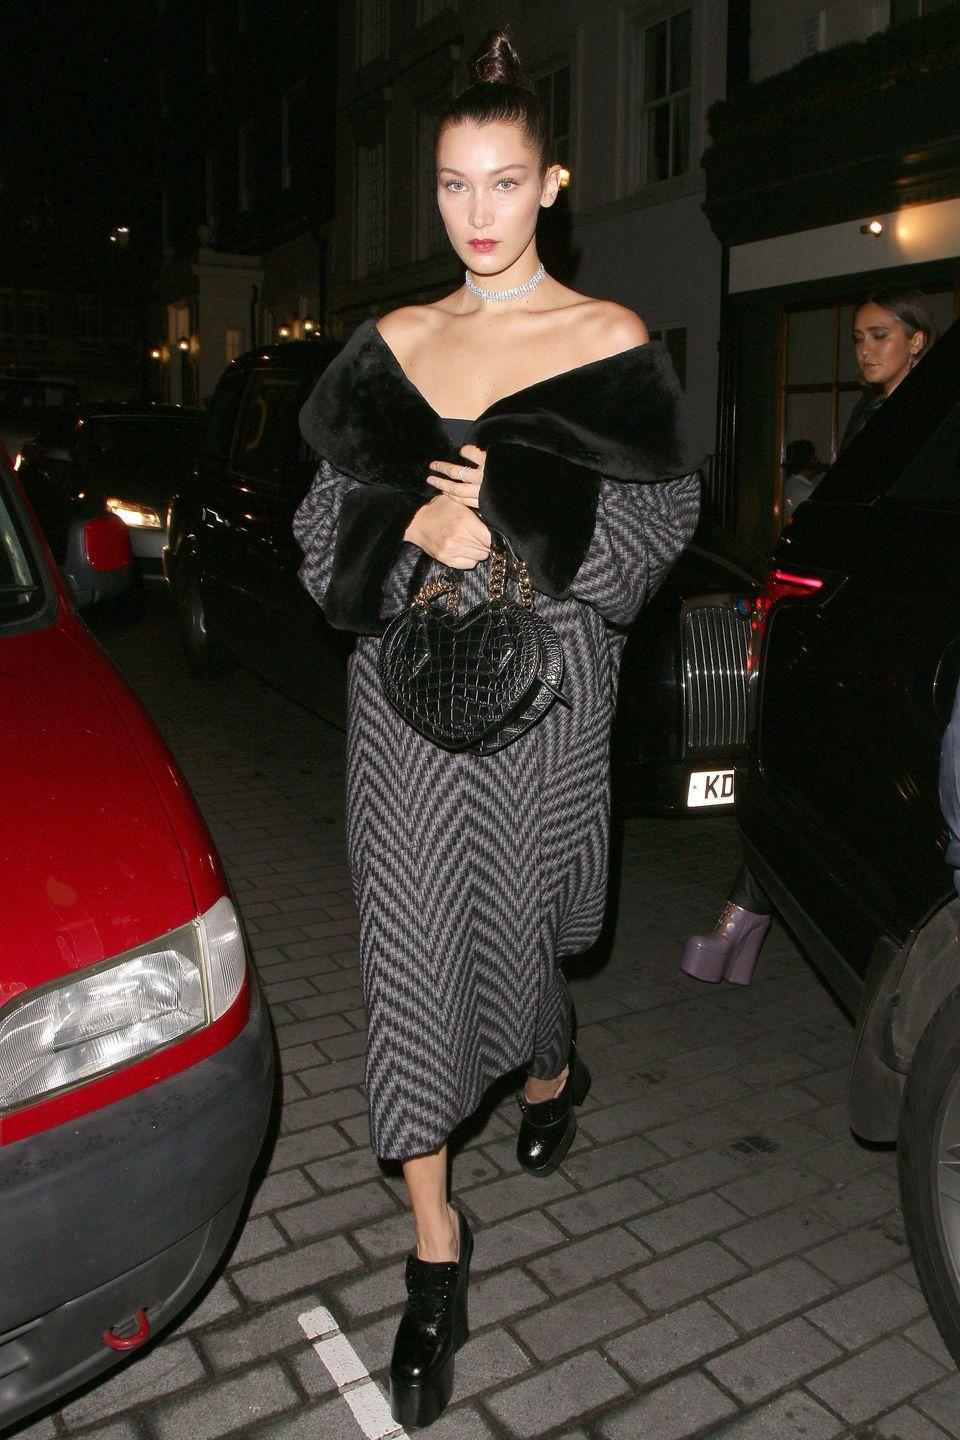 <p>Bella Hadid in platforms and a fur lined wrap dress at Lou Lou's for the Love Magazine party on Day 4 of London Fashion Week Spring/Summer 2017.</p>